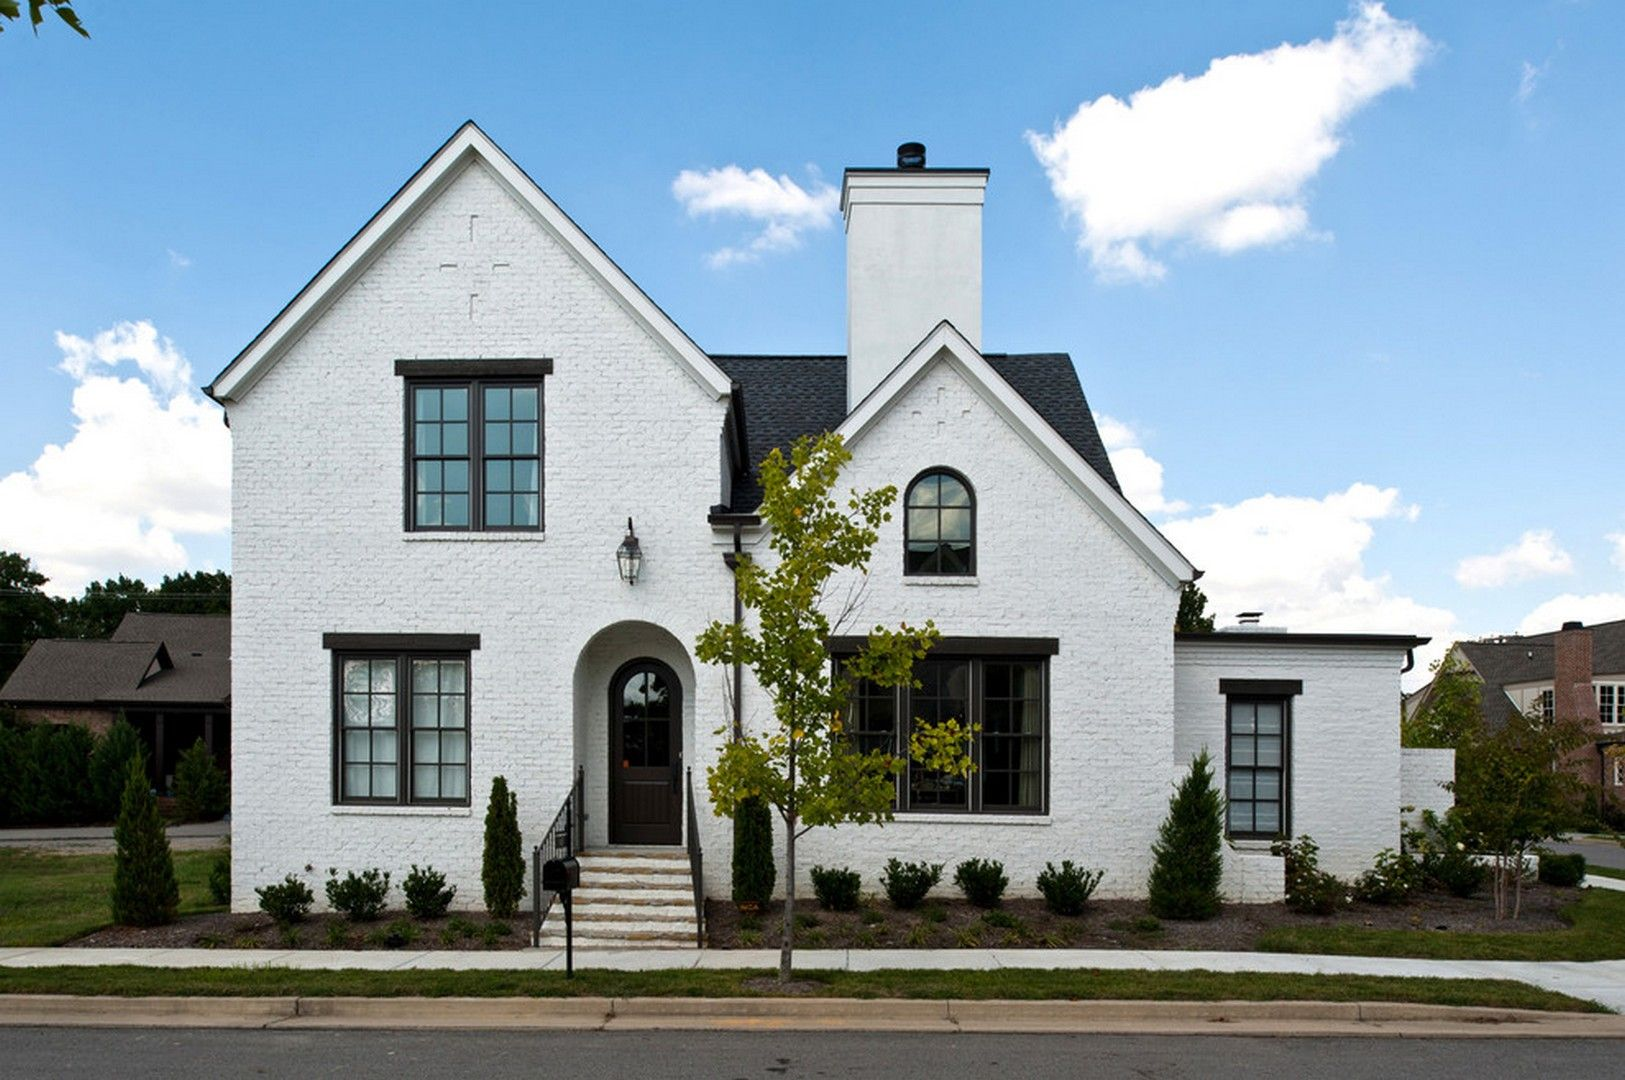 30 White Painted Brick Homes To Give The Sophisticated And Monumental Effects Https Www Housenli White Exterior Houses Painted Brick House White Brick Houses